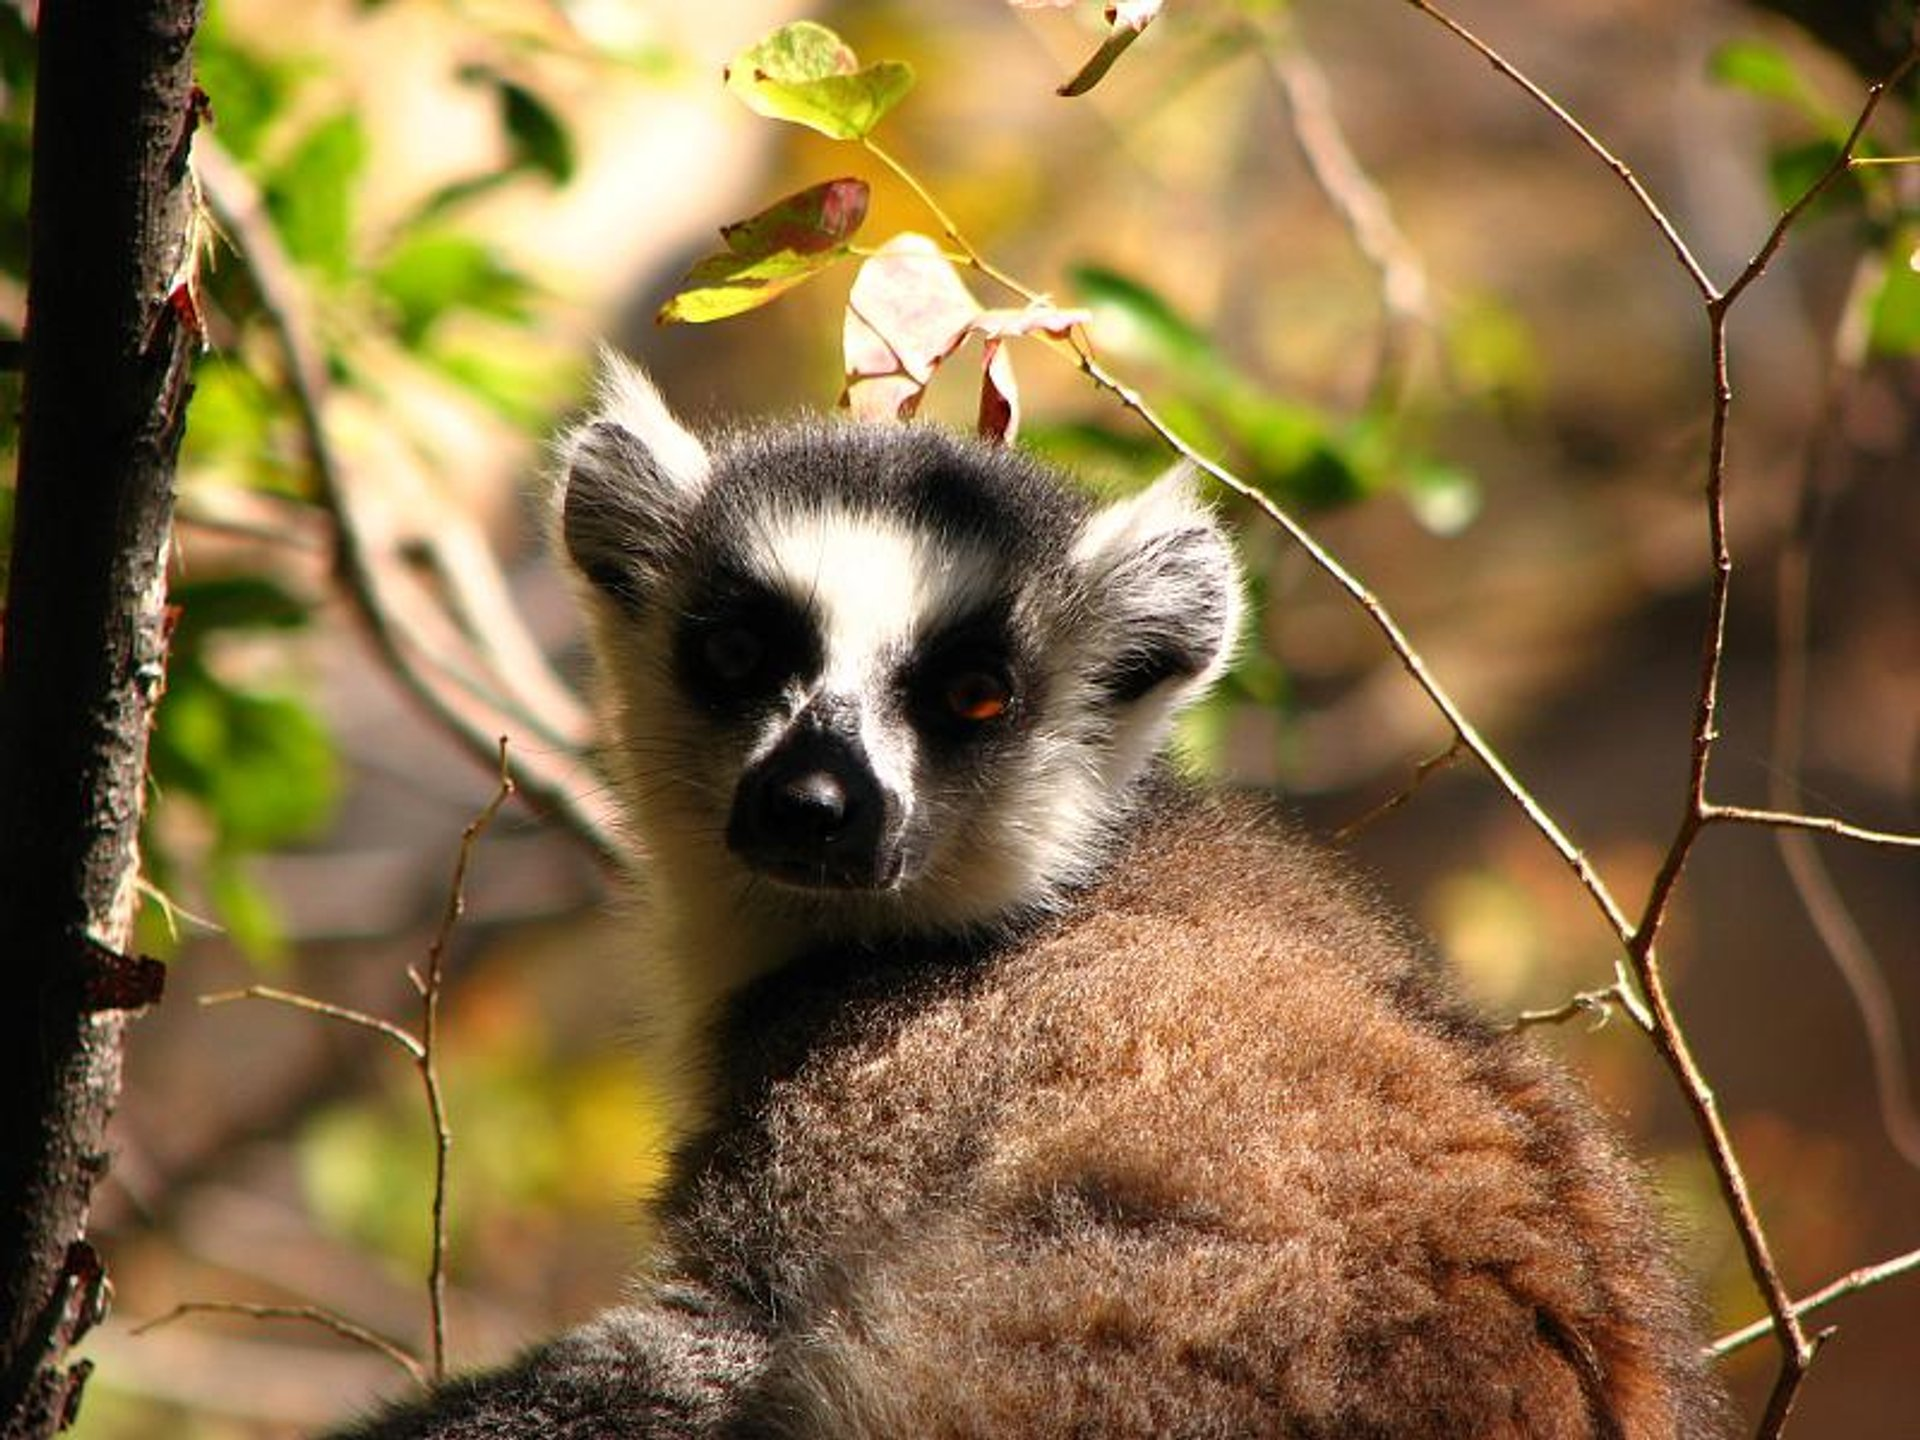 Jurassic​ Park with Lemurs in Madagascar 2020 - Best Time